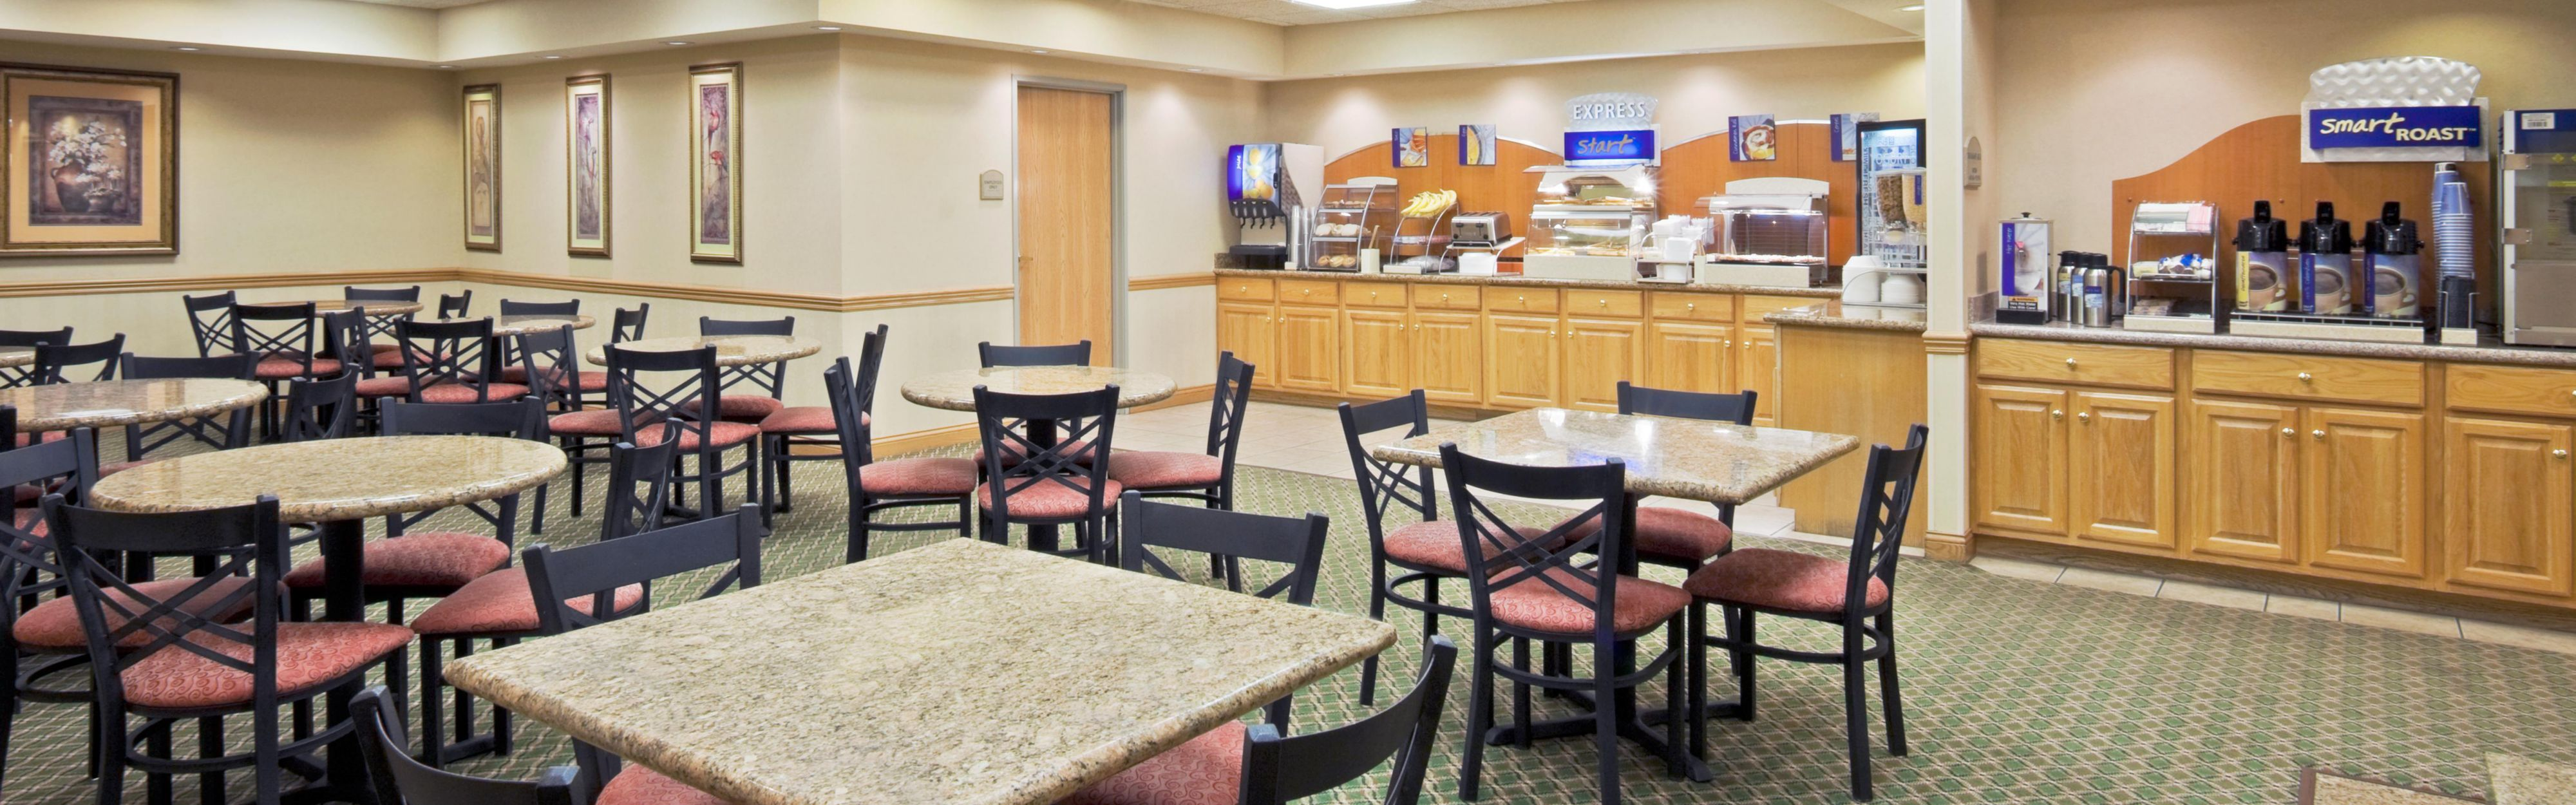 Holiday Inn Express & Suites Elkhart-South image 3